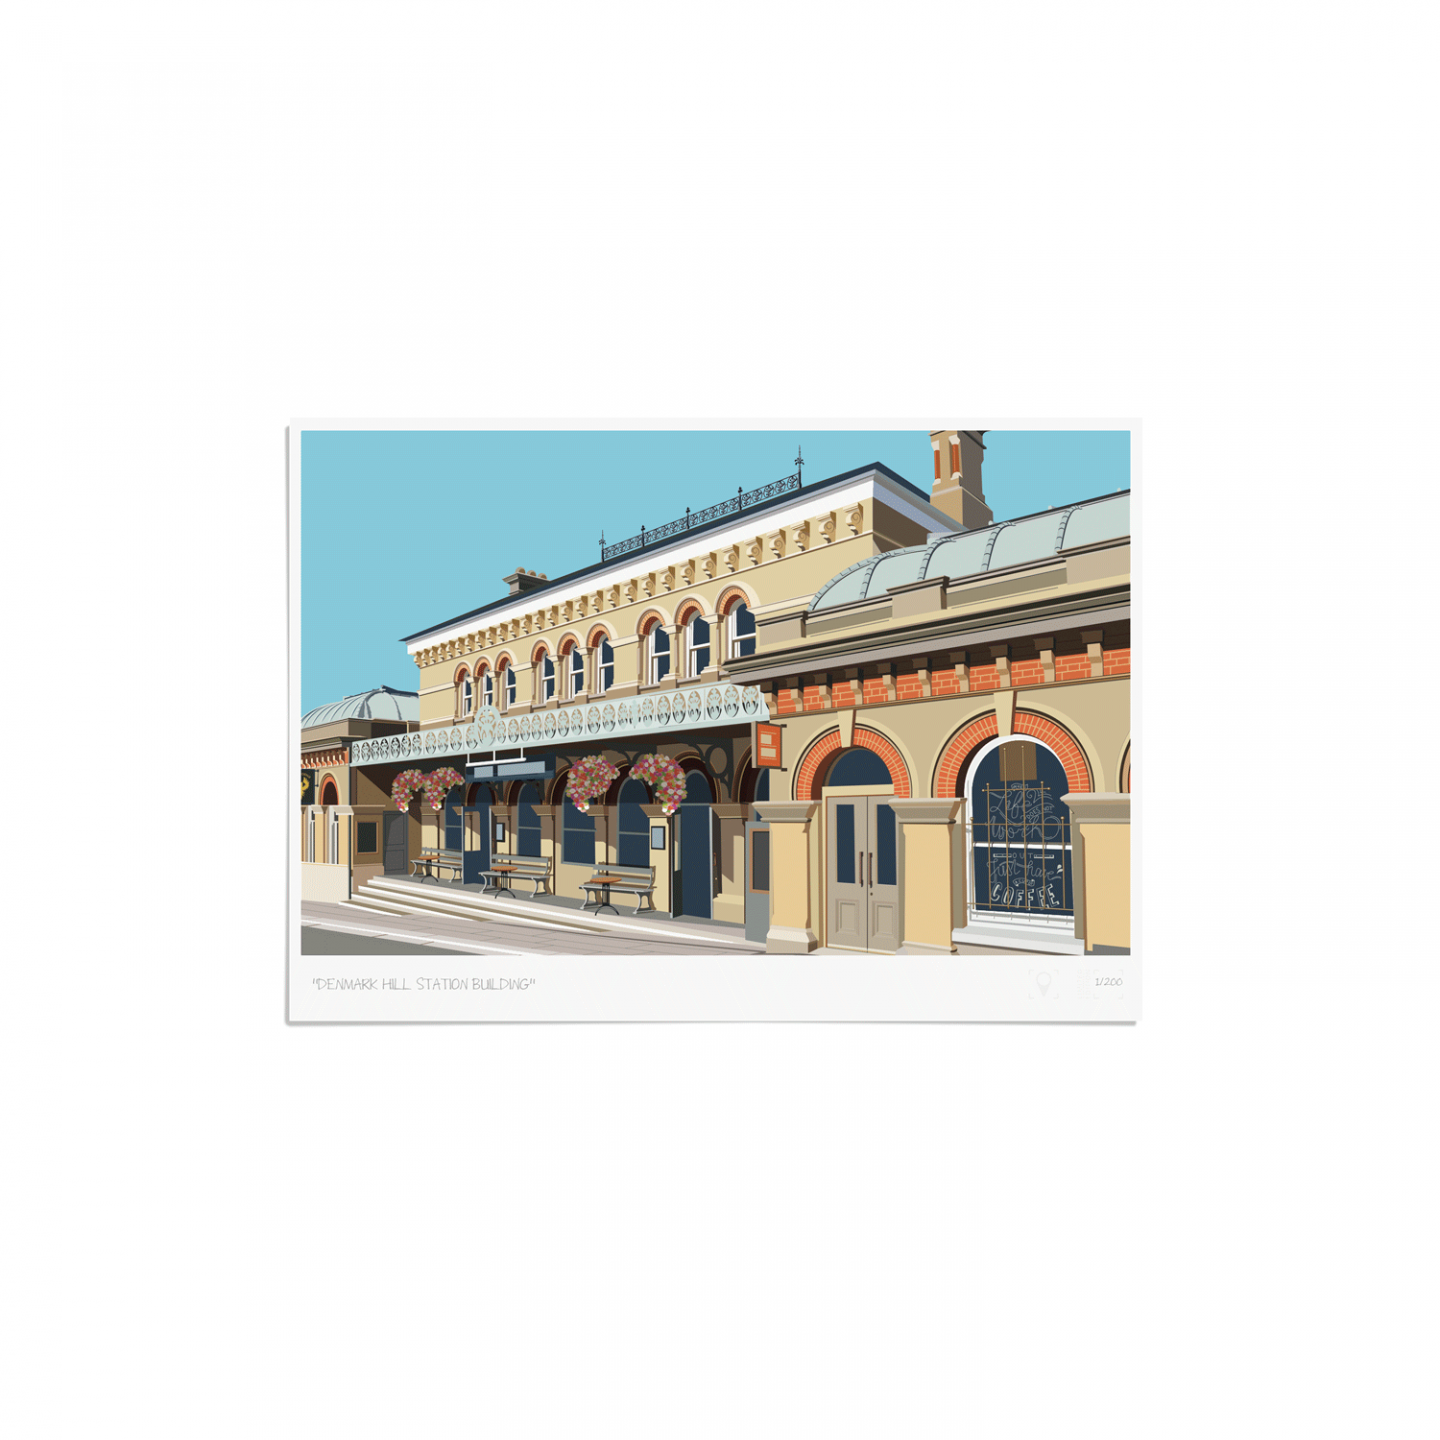 Place in Print Denmark Hill Station Building Art Print Unframed